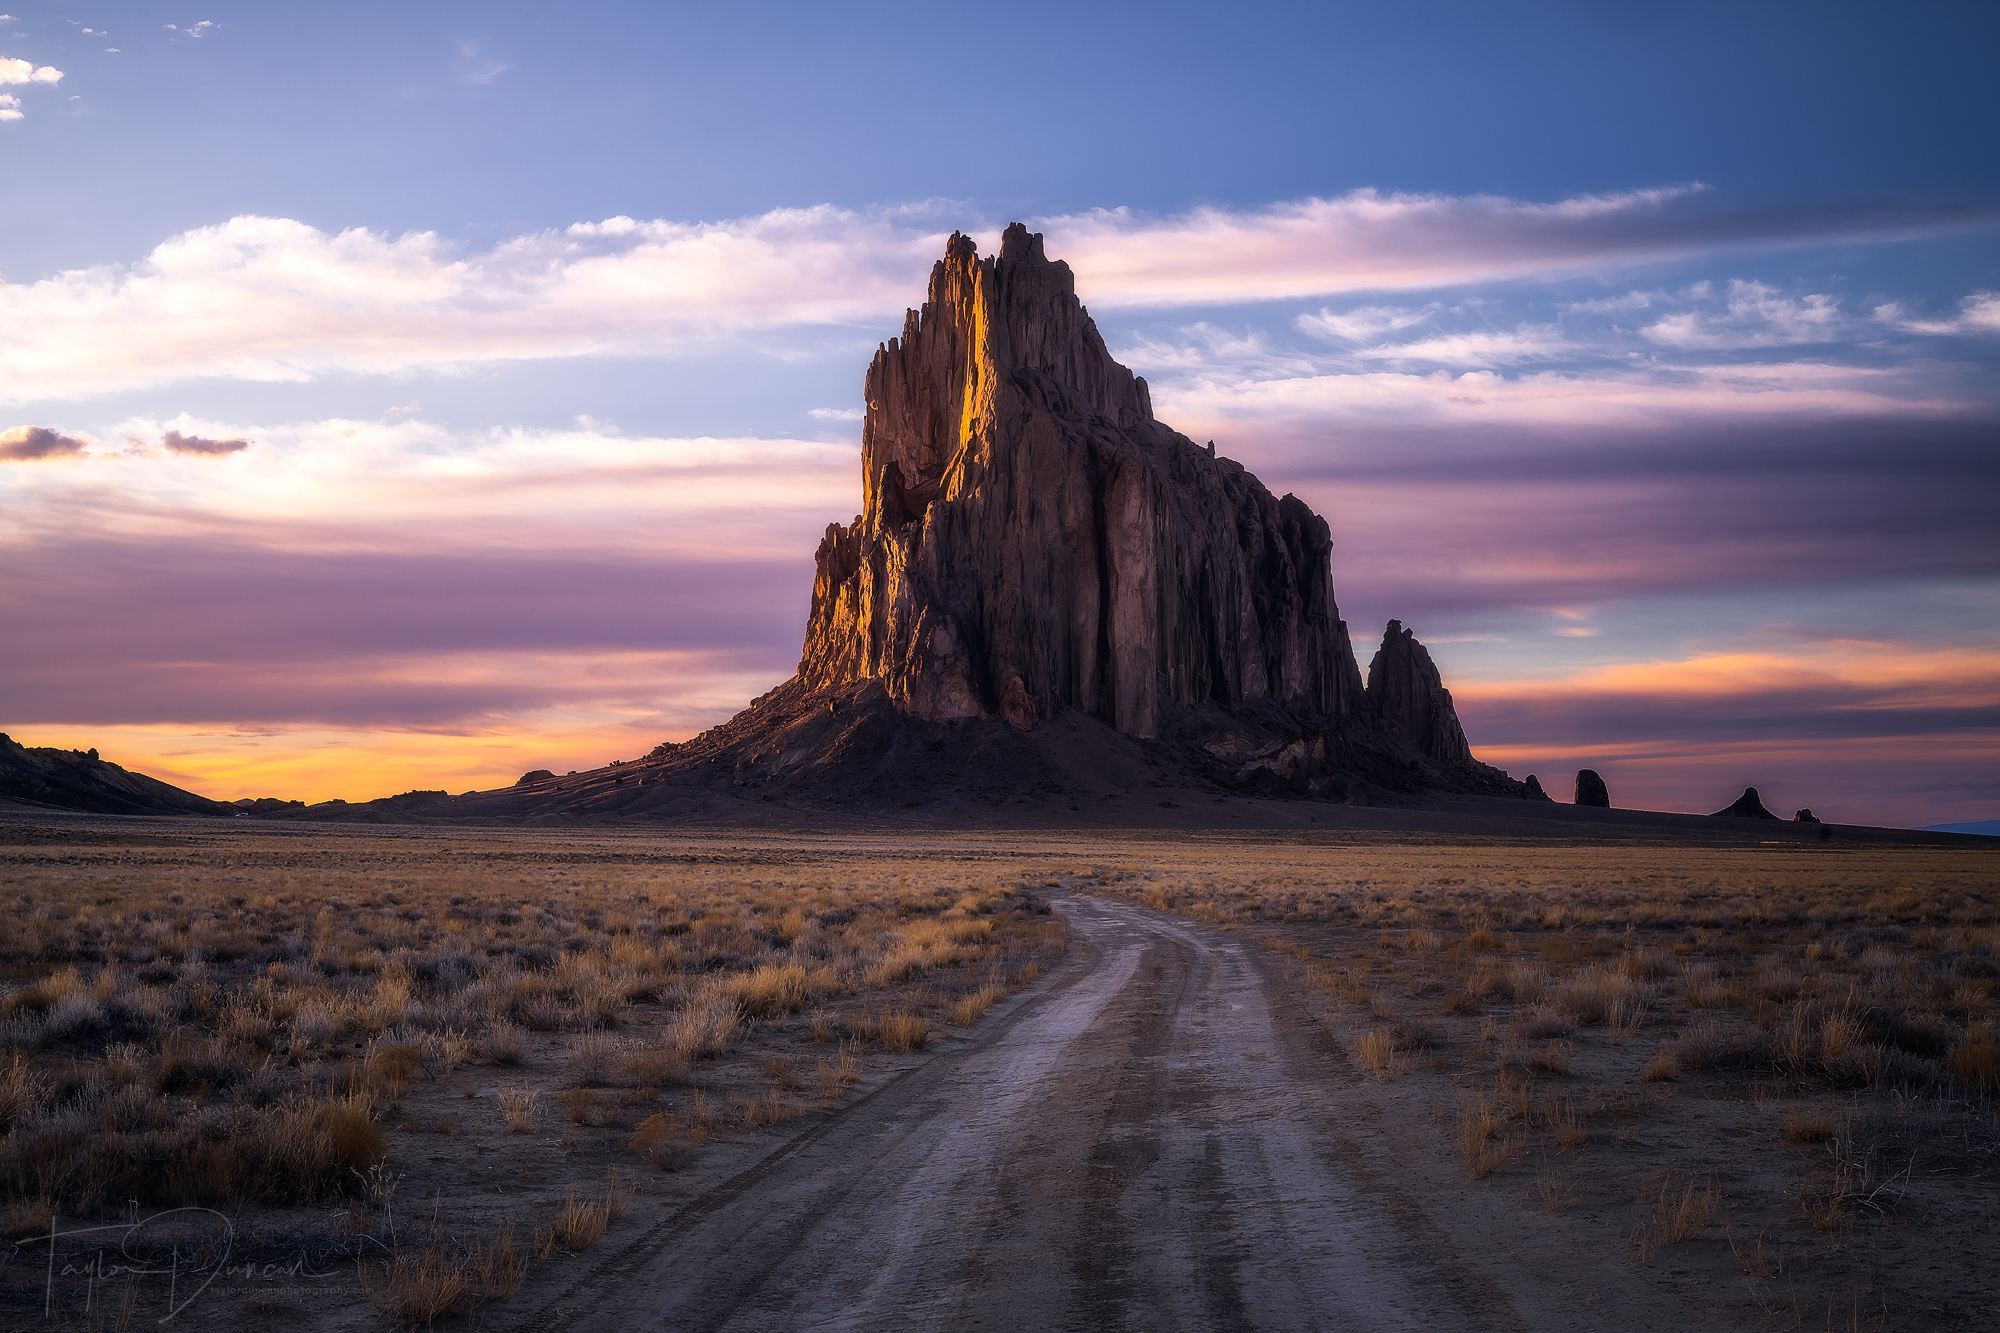 Watching the sunset at Shiprock is an incredible experience!